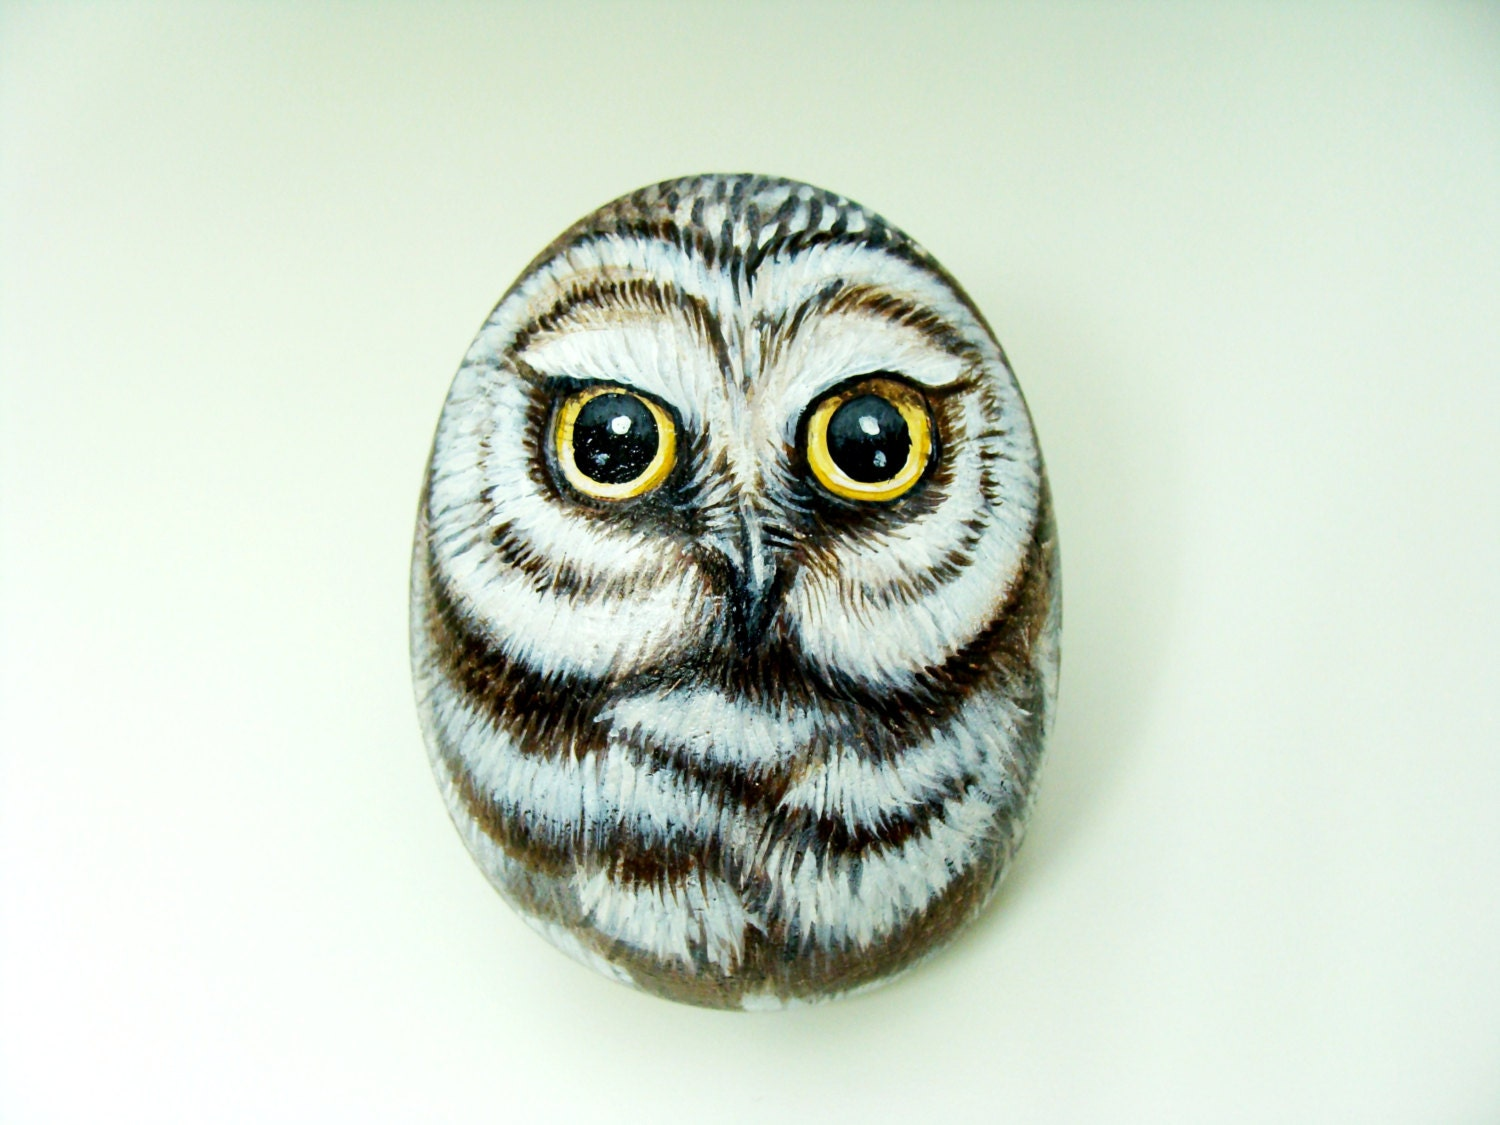 Cute Little Owl Hand Painted Rock by Shelli Bowler